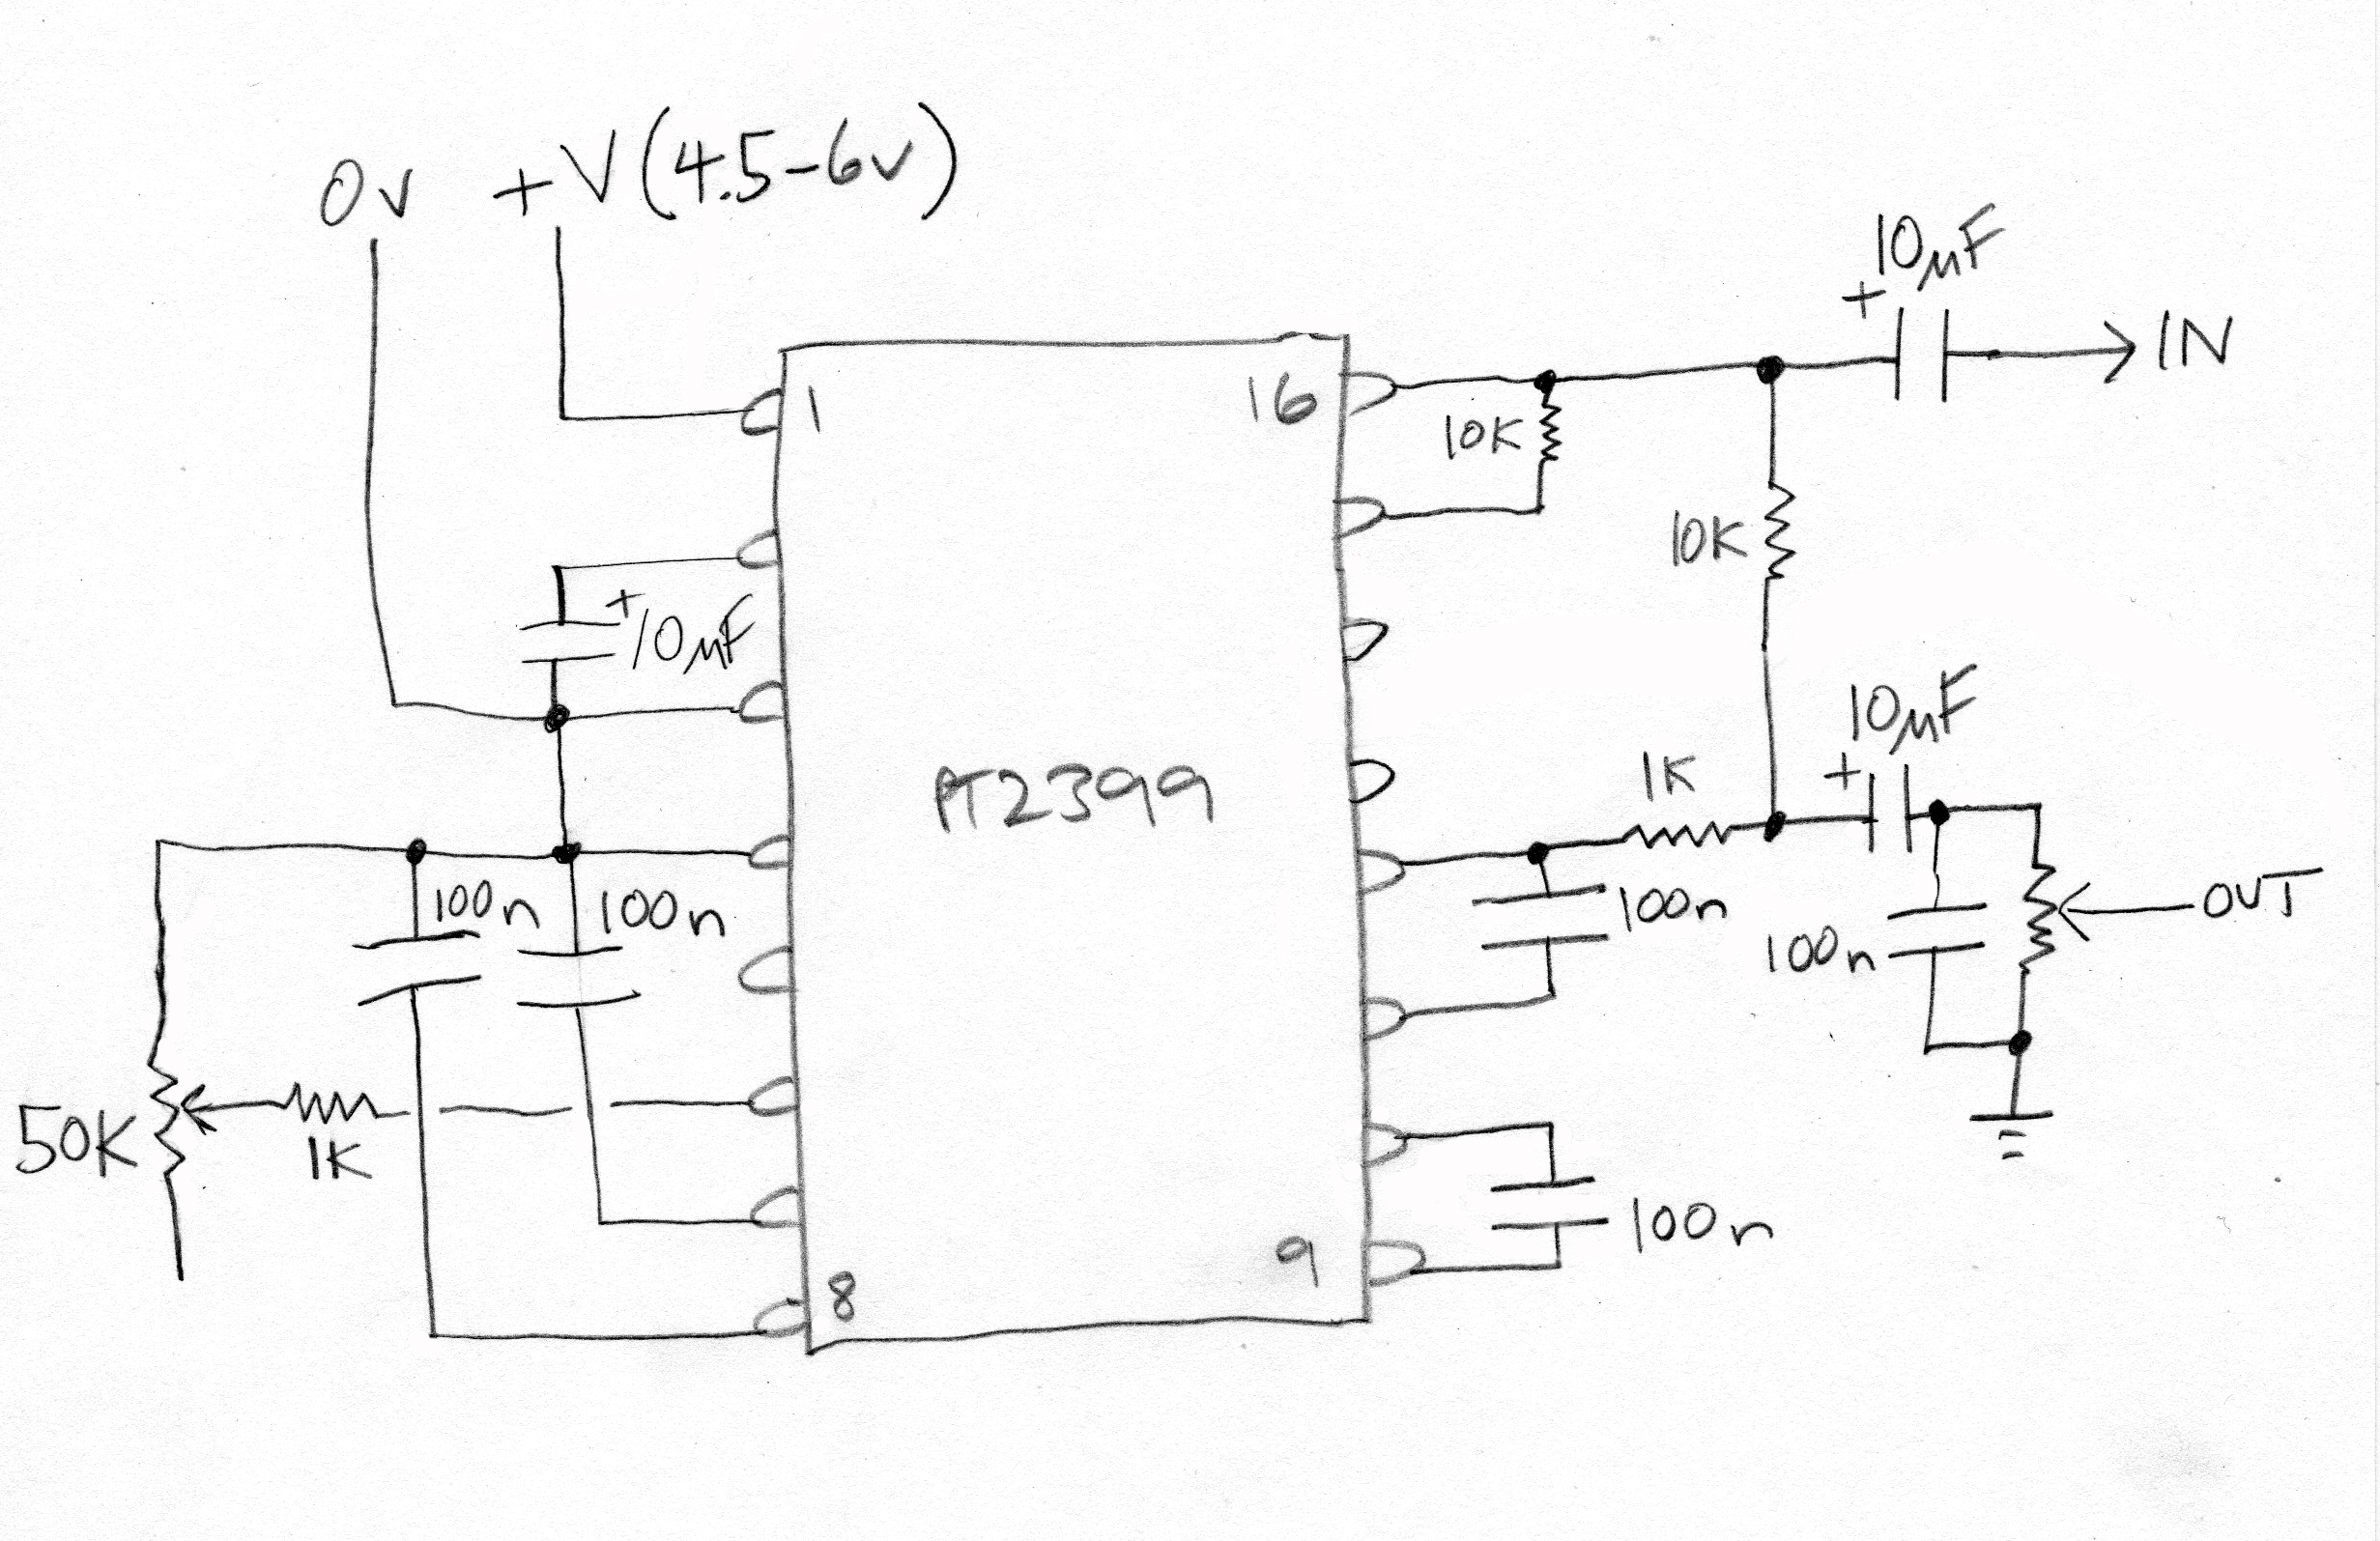 EH_6651] Pt2399 Easy To Build Echo Delay Circuit With A Pt2399 Digital  Delay Ic Download DiagramTeria Benkeme Mohammedshrine Librar Wiring 101